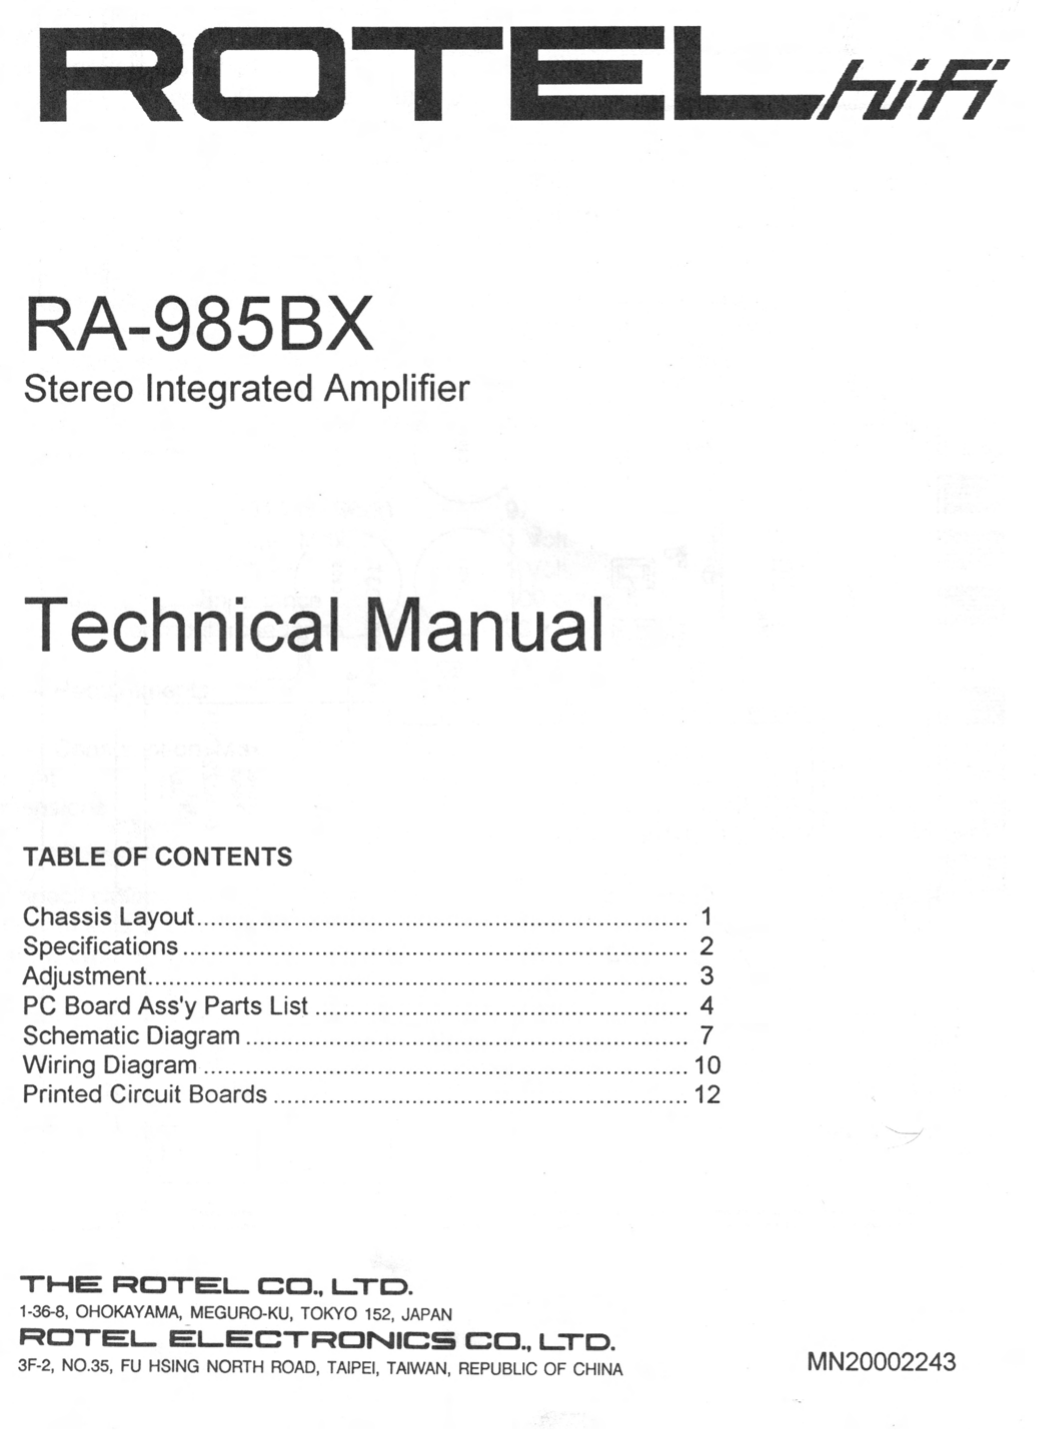 pdf for Rotel Amp RA-985BX manual